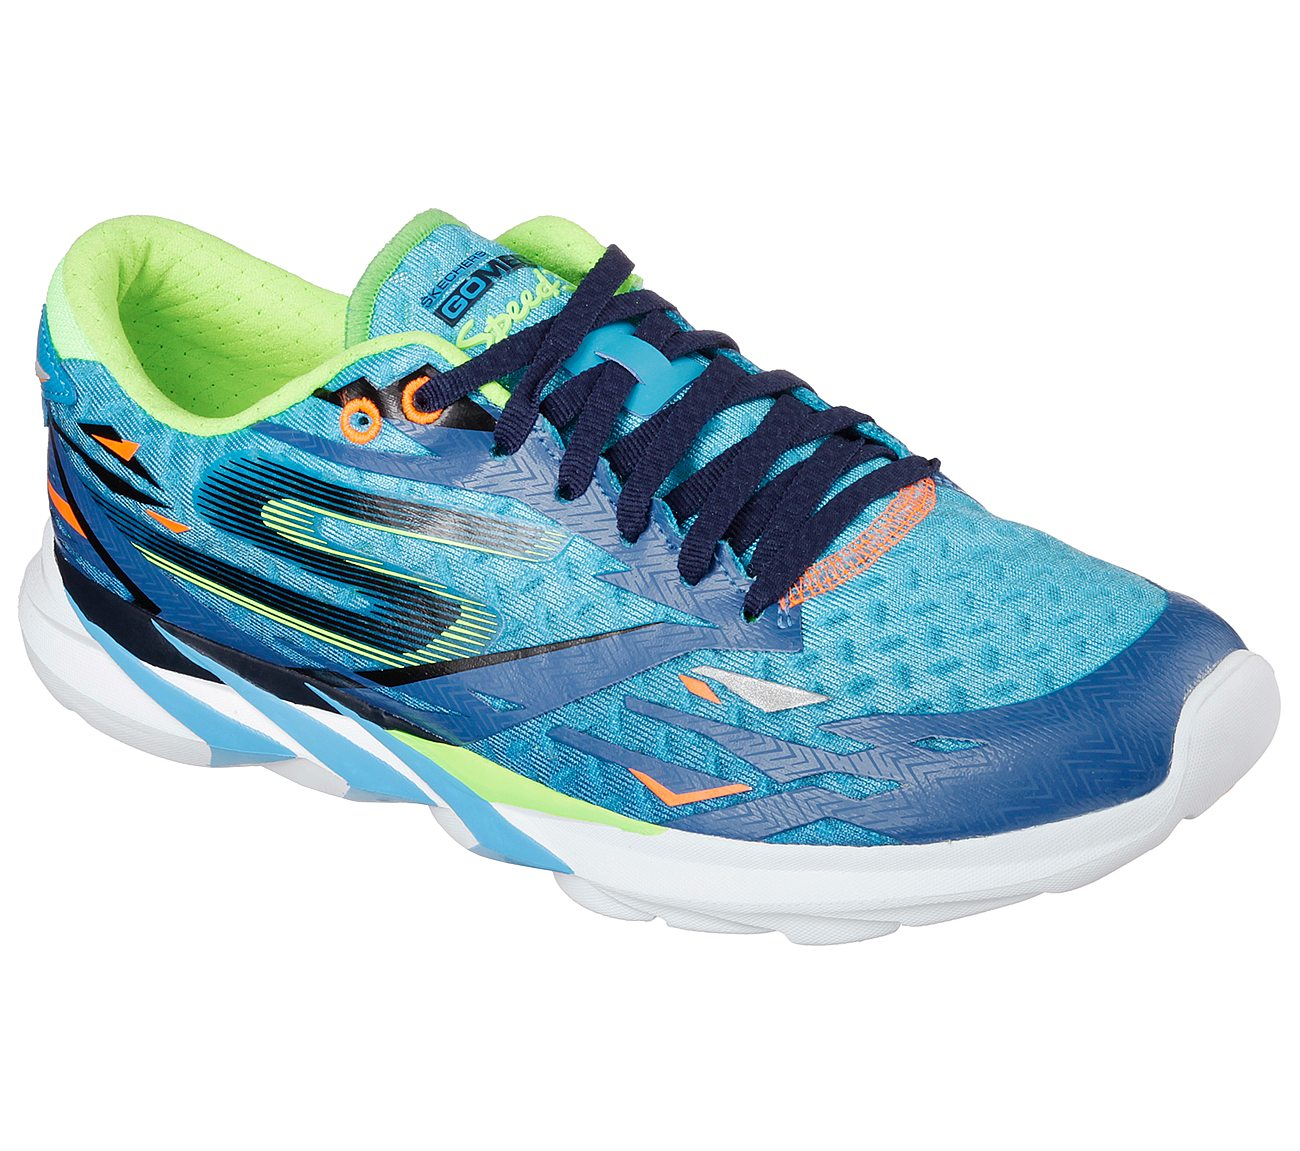 SKECHERS GO MEB SPEED 3 – The BCode